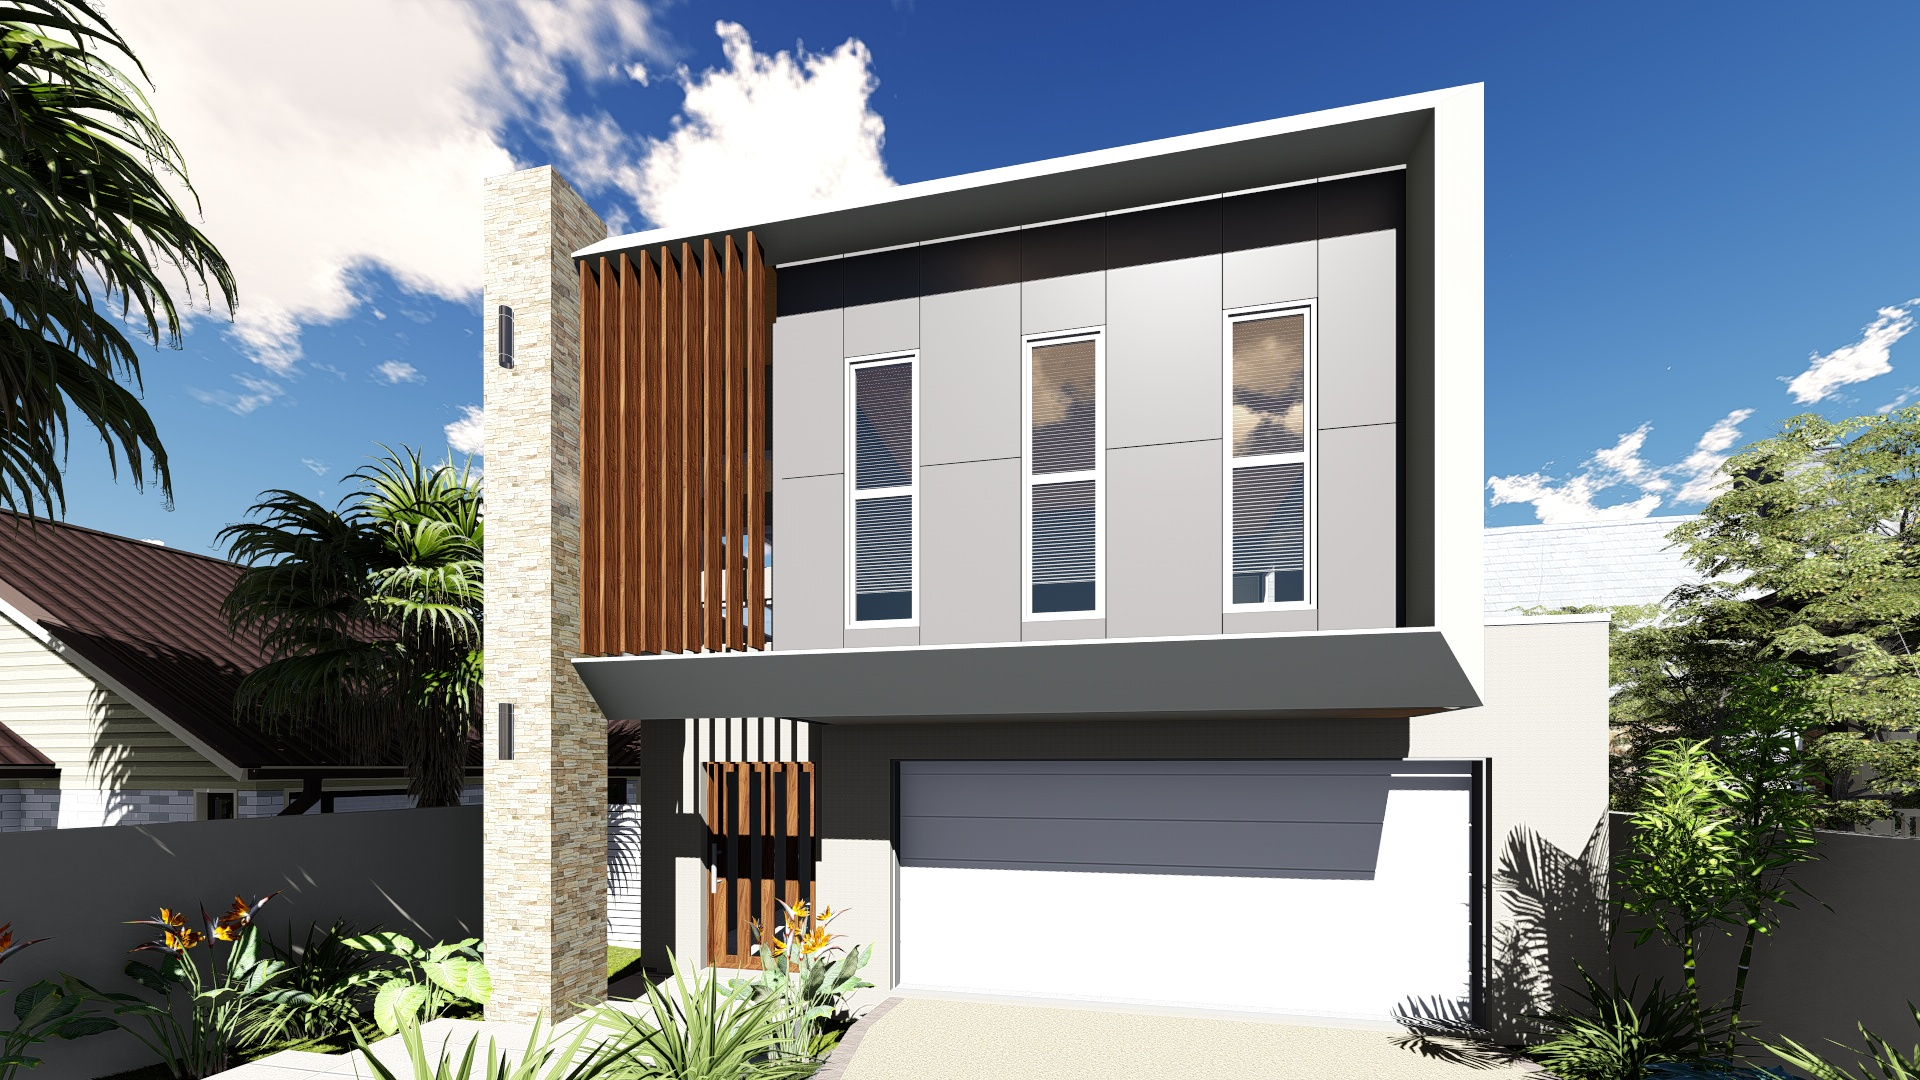 88+ Home Designs Brisbane Qld - Sloping Block House Plans Qld ...